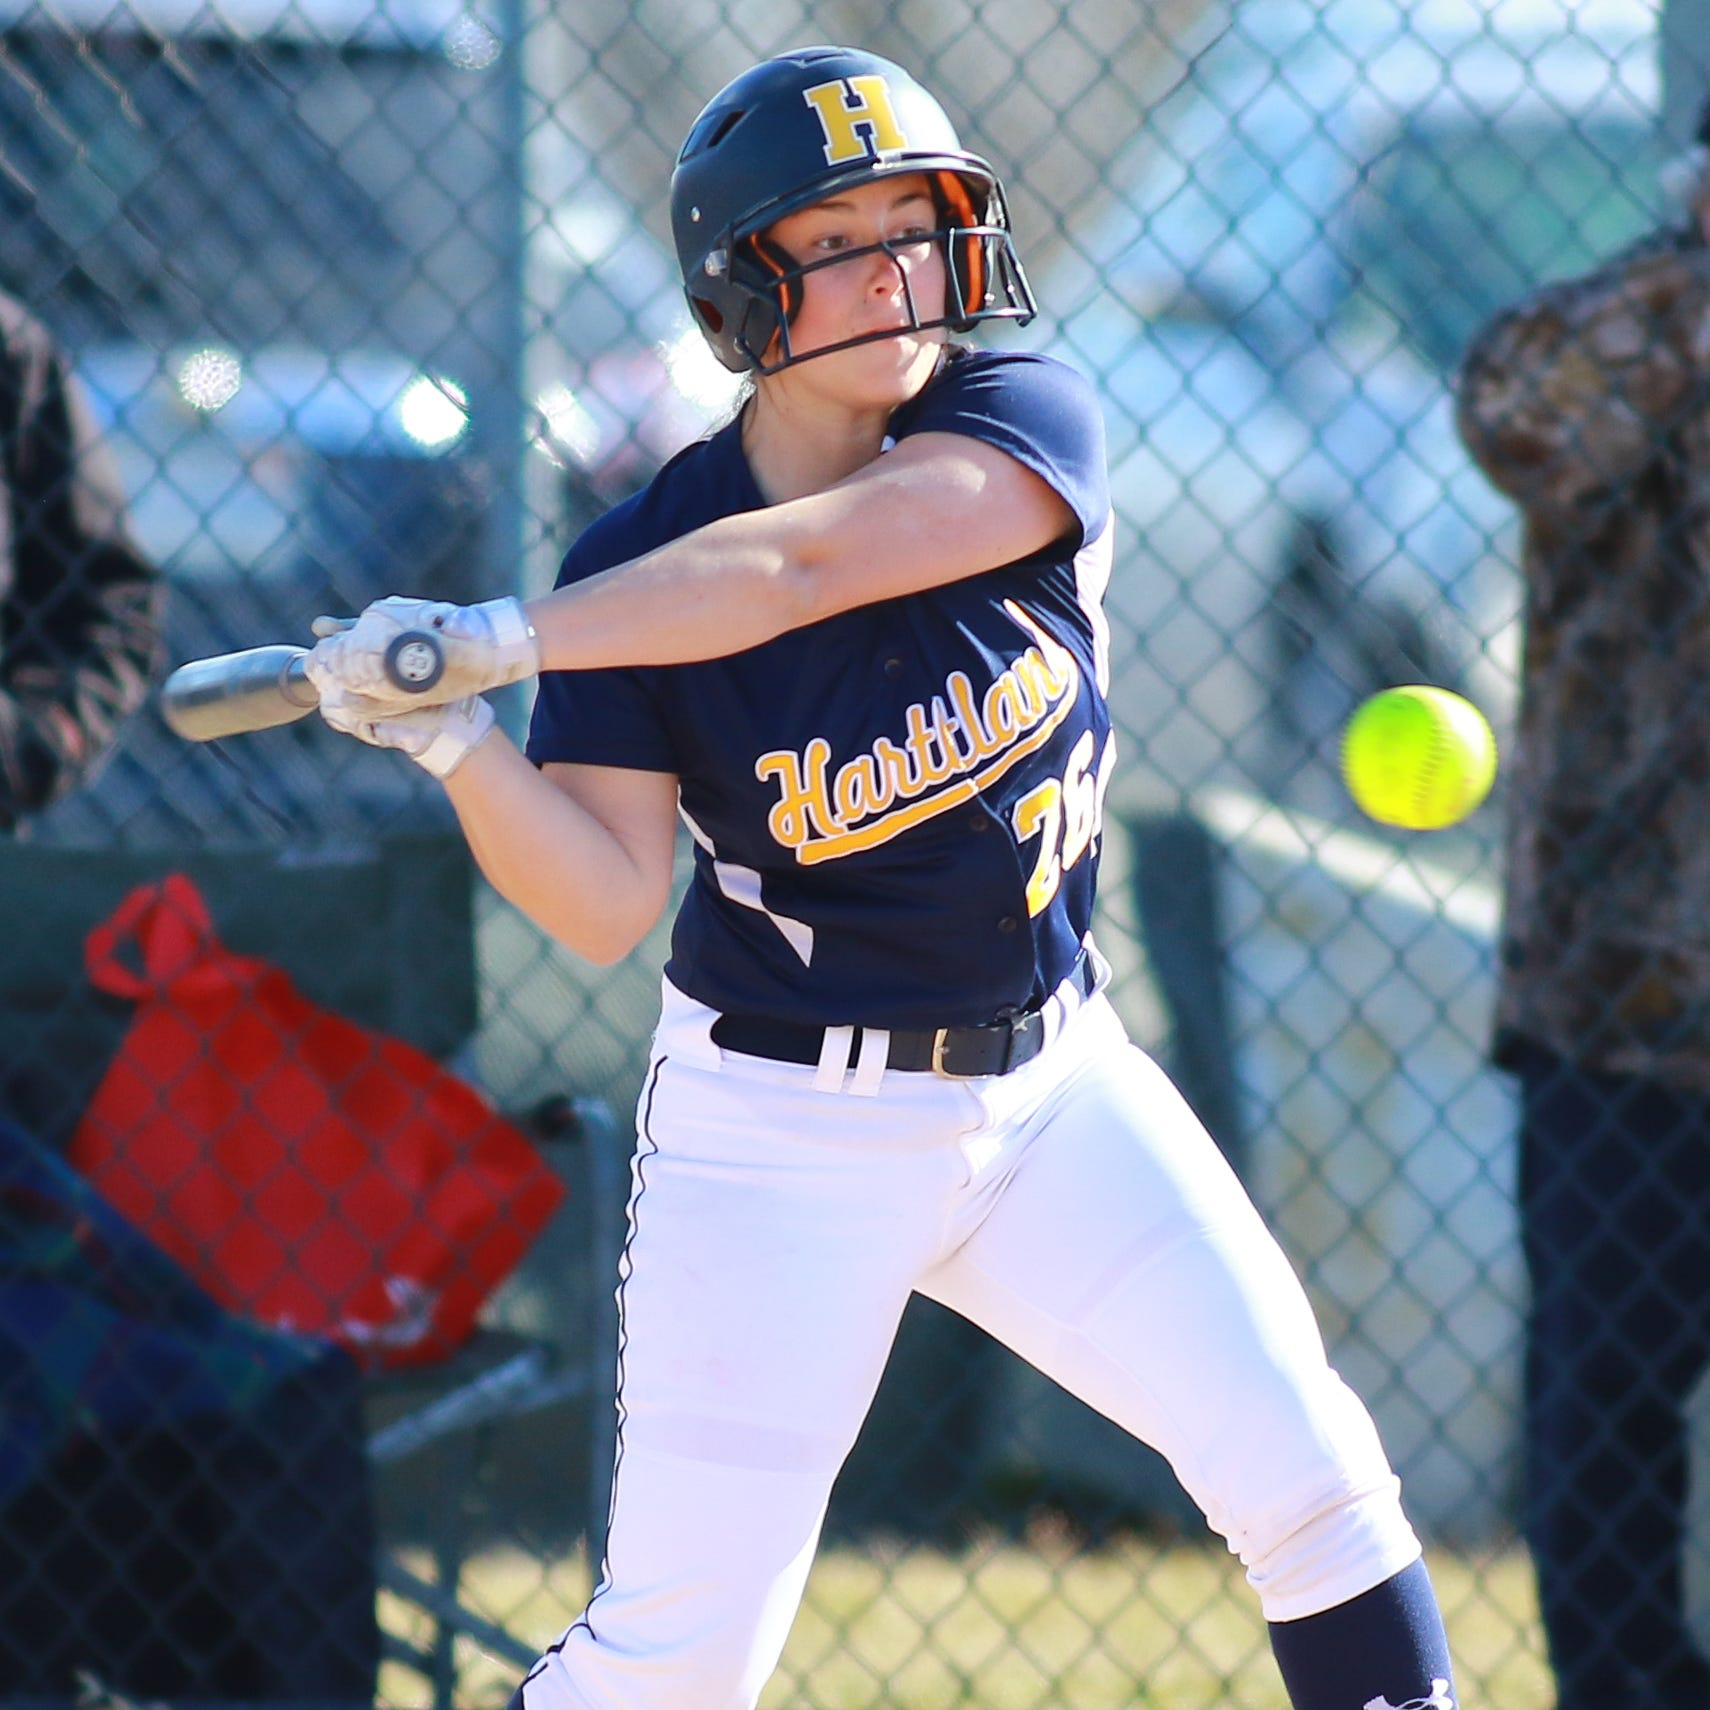 Prep roundup: Hartland, Howell, Pinckney win in softball